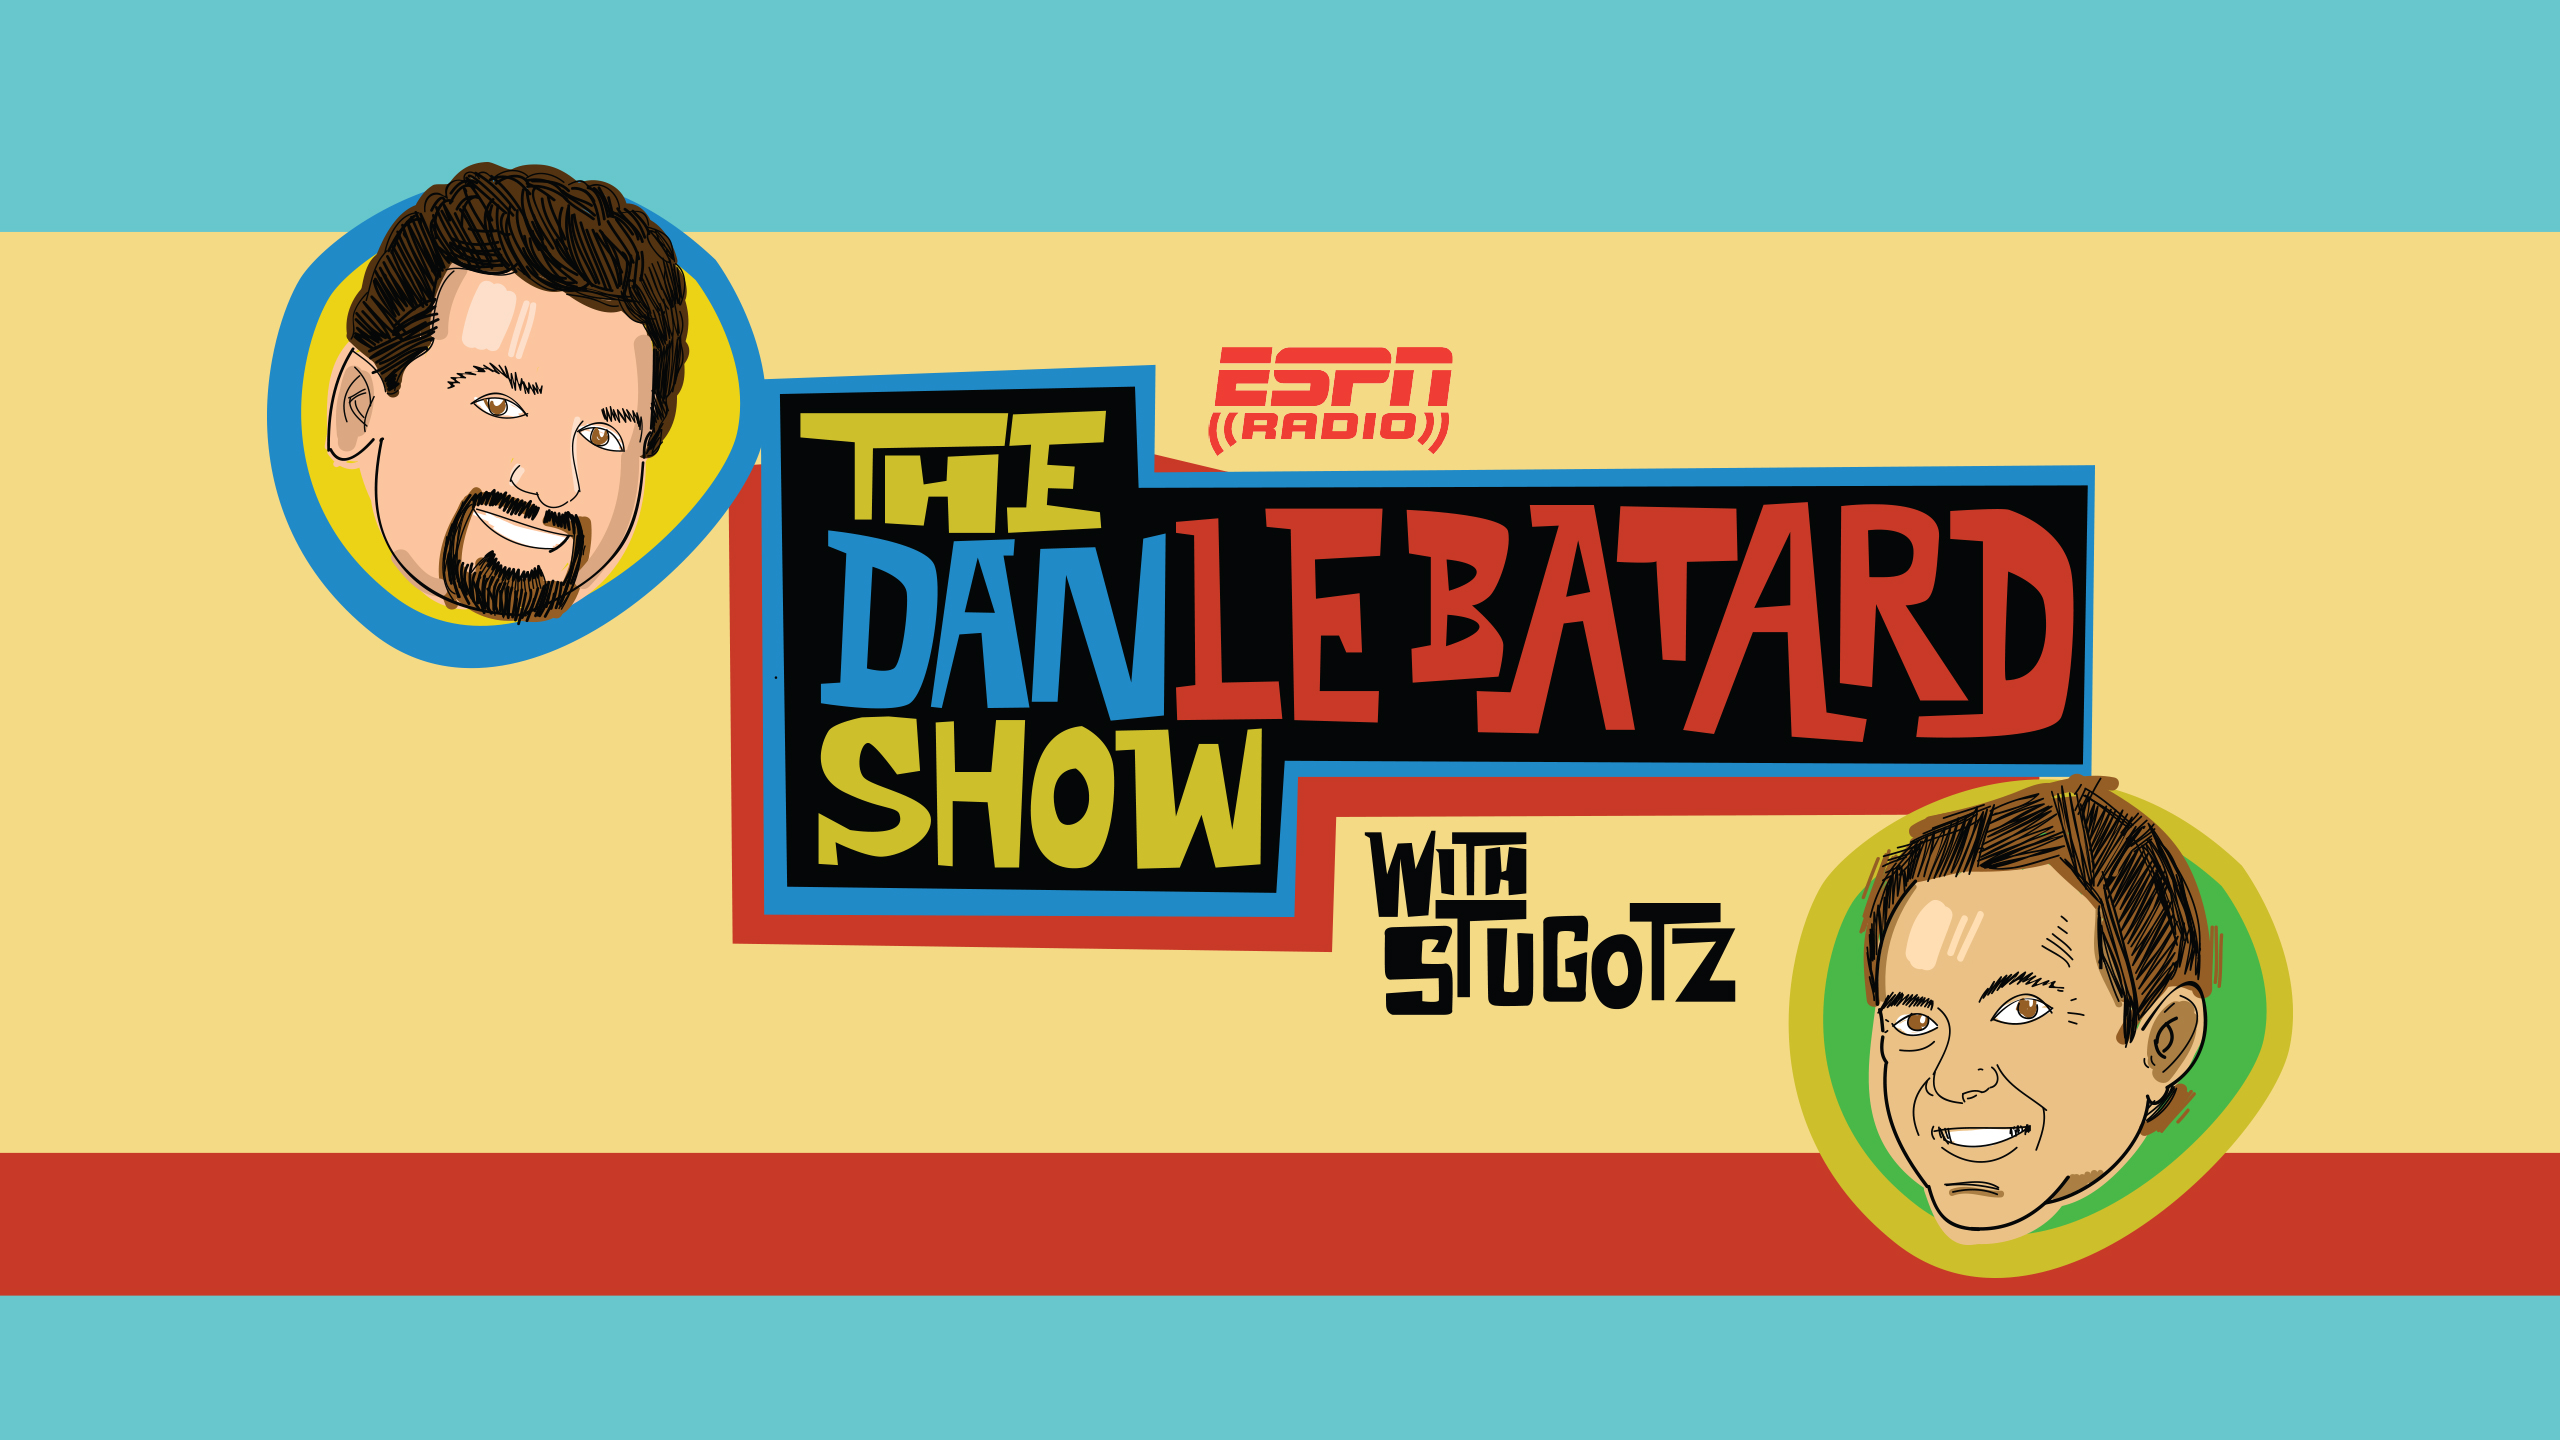 Tue, 3/19 - The Dan Le Batard Show with Stugotz Presented by Progressive